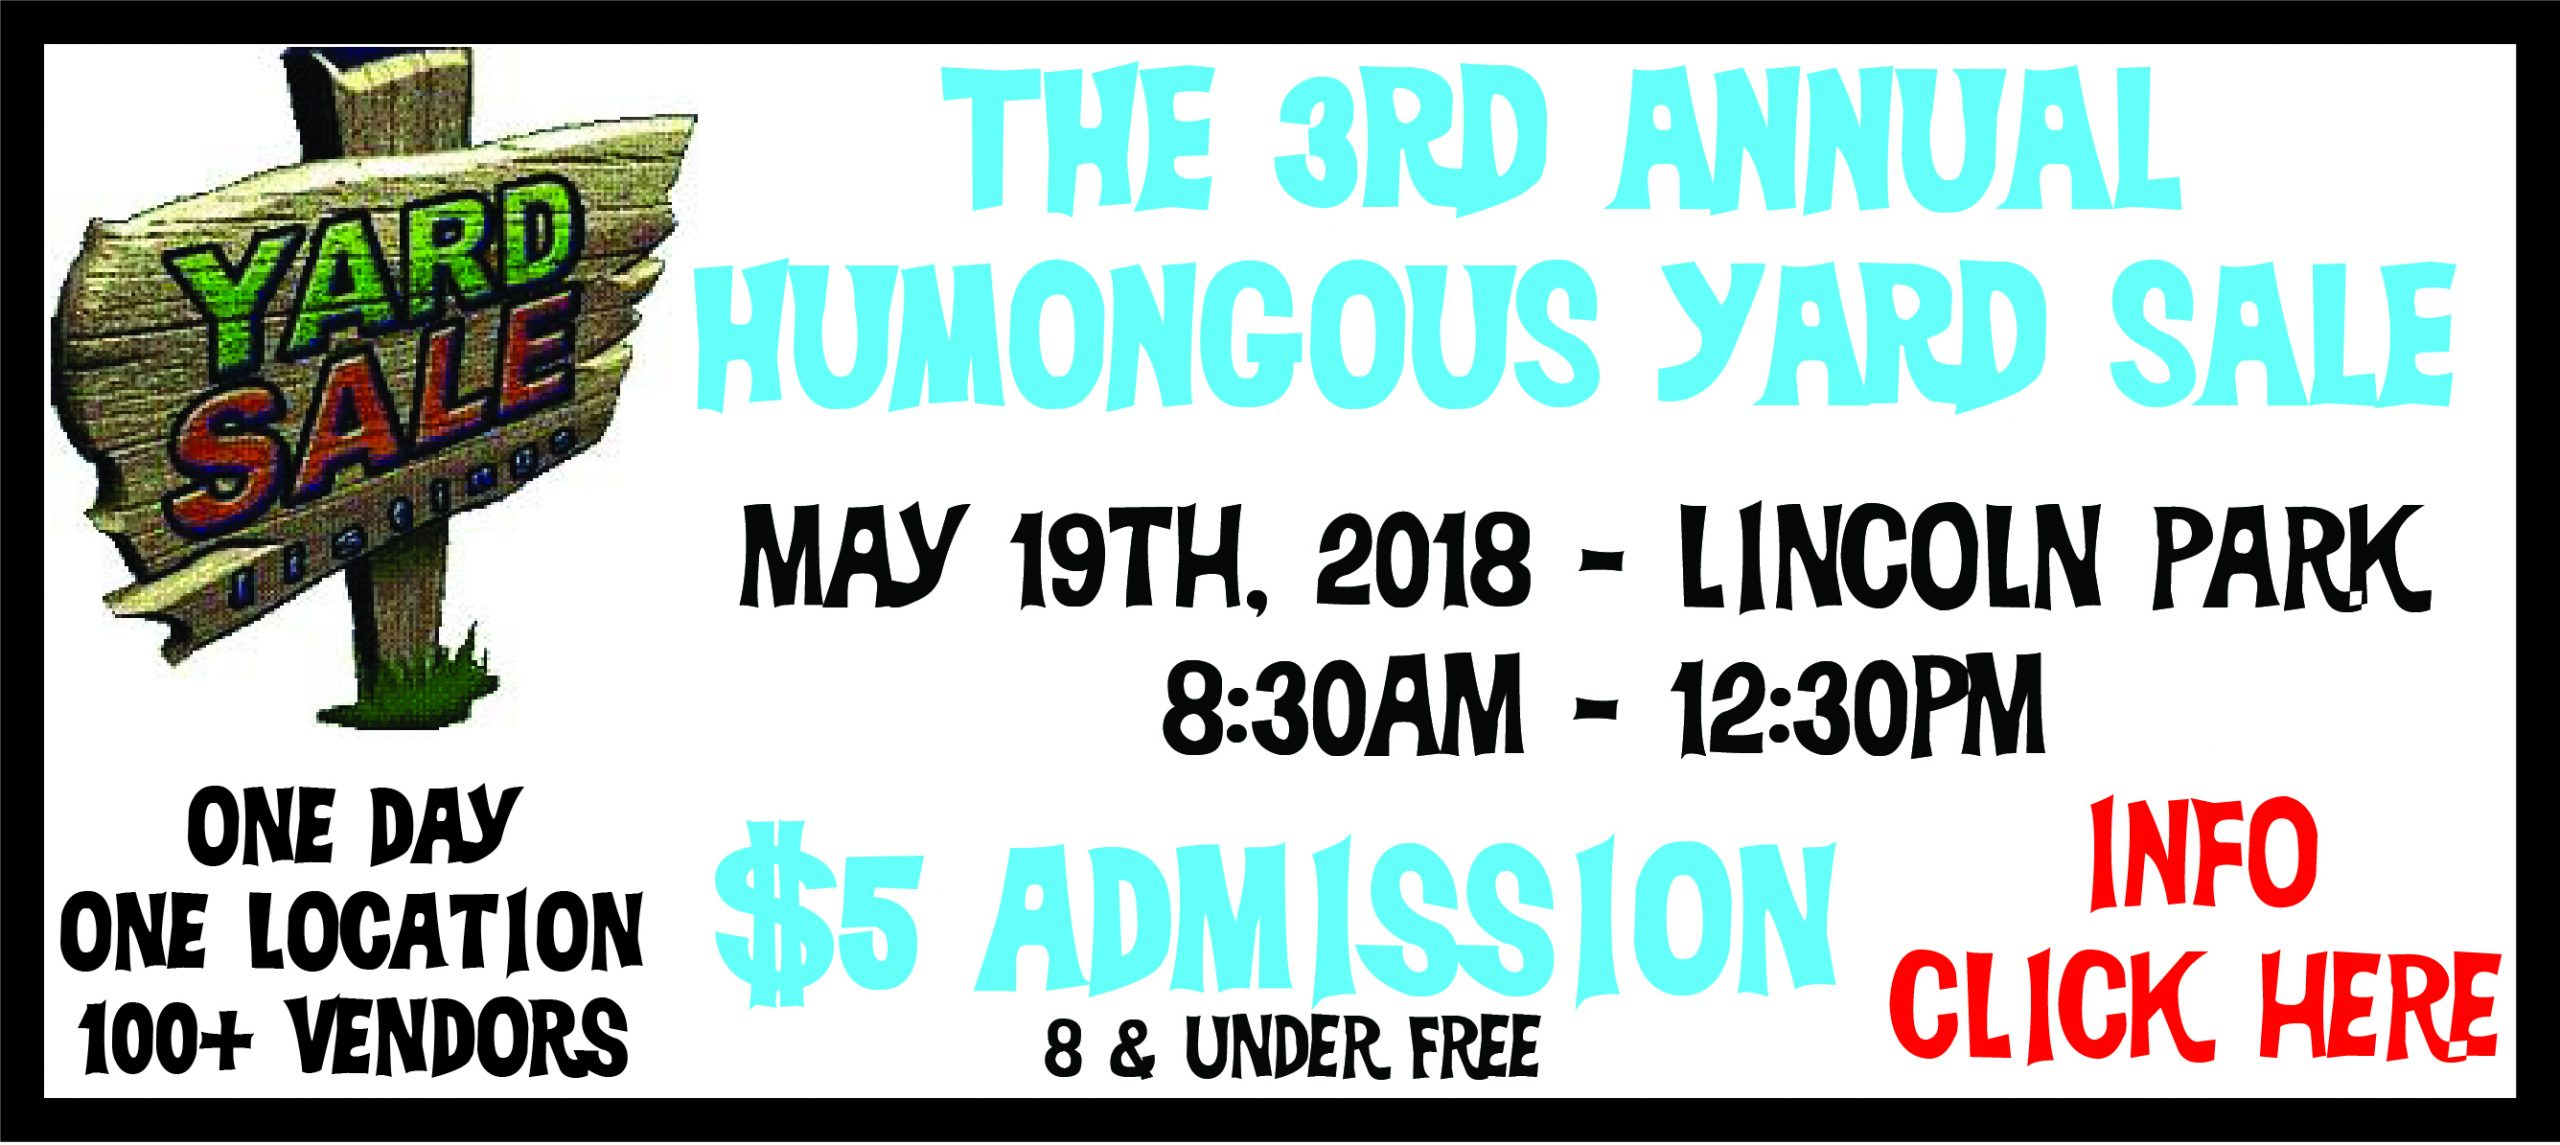 Feature: http://www.themoose923.com/syn/820/4410/humongous-yard-sale/